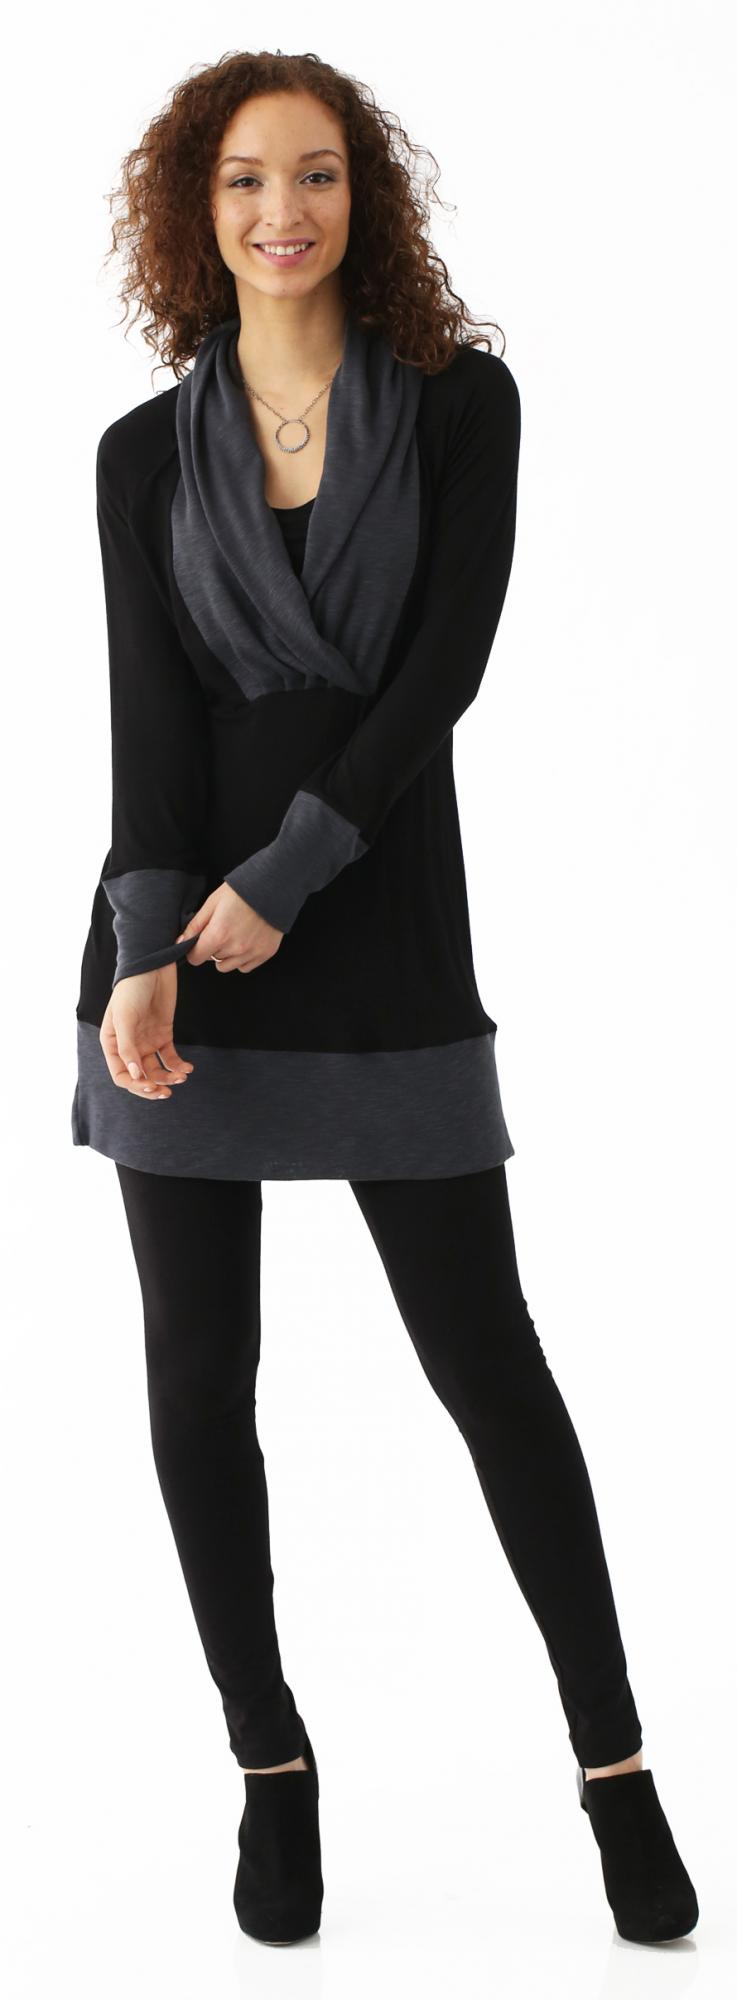 majamas-simone-nursing-tunic-black.jpg